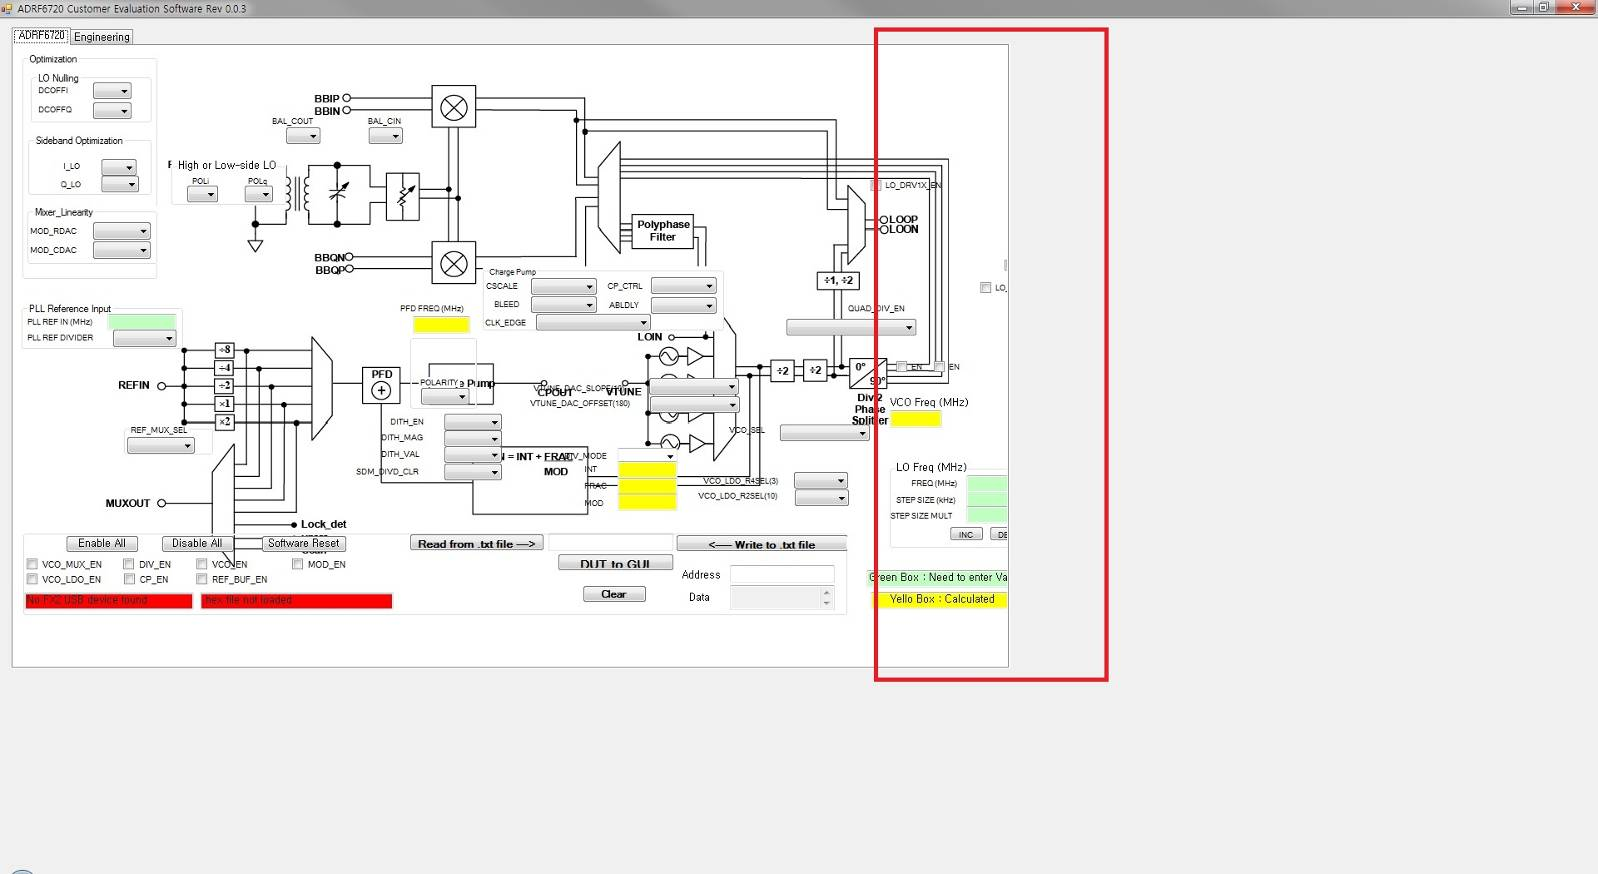 issue at a block diagram display in adrf6720/adrf6820 evaluation software